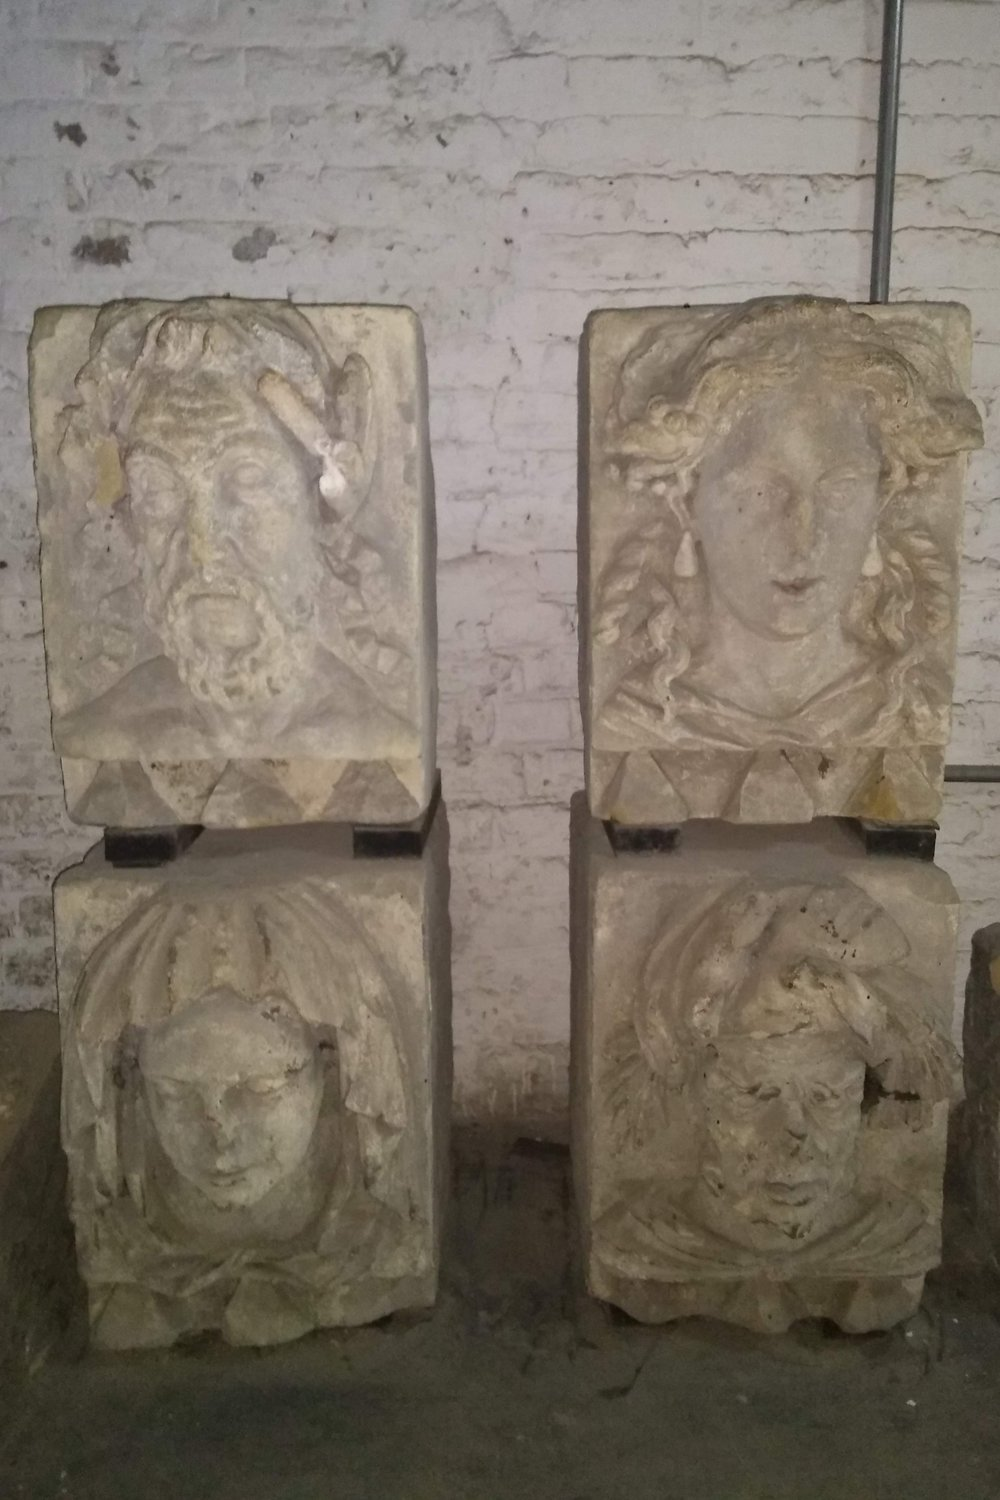 The stone-carved heads in the Undercroft to Queen Anne at the Old Royal Naval College, University of Greenwich